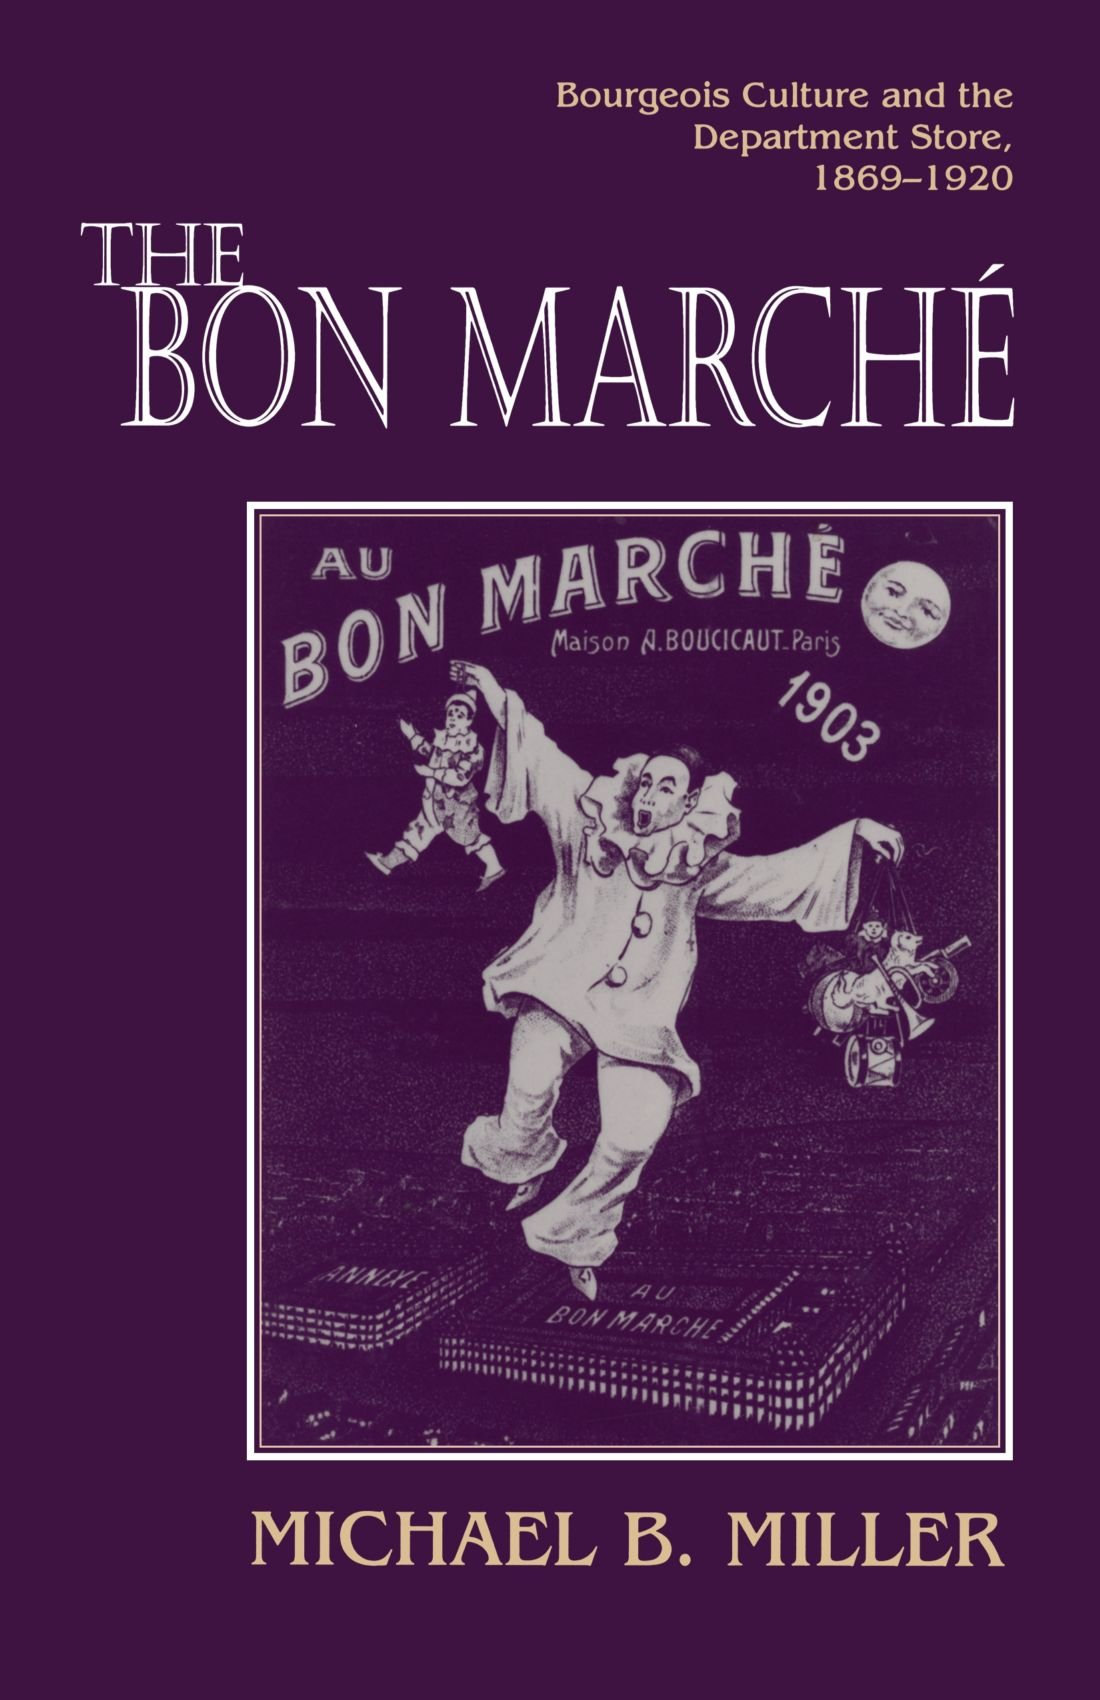 The Bon Marche: Bourgeois Culture and the Department Store, 1869-1920